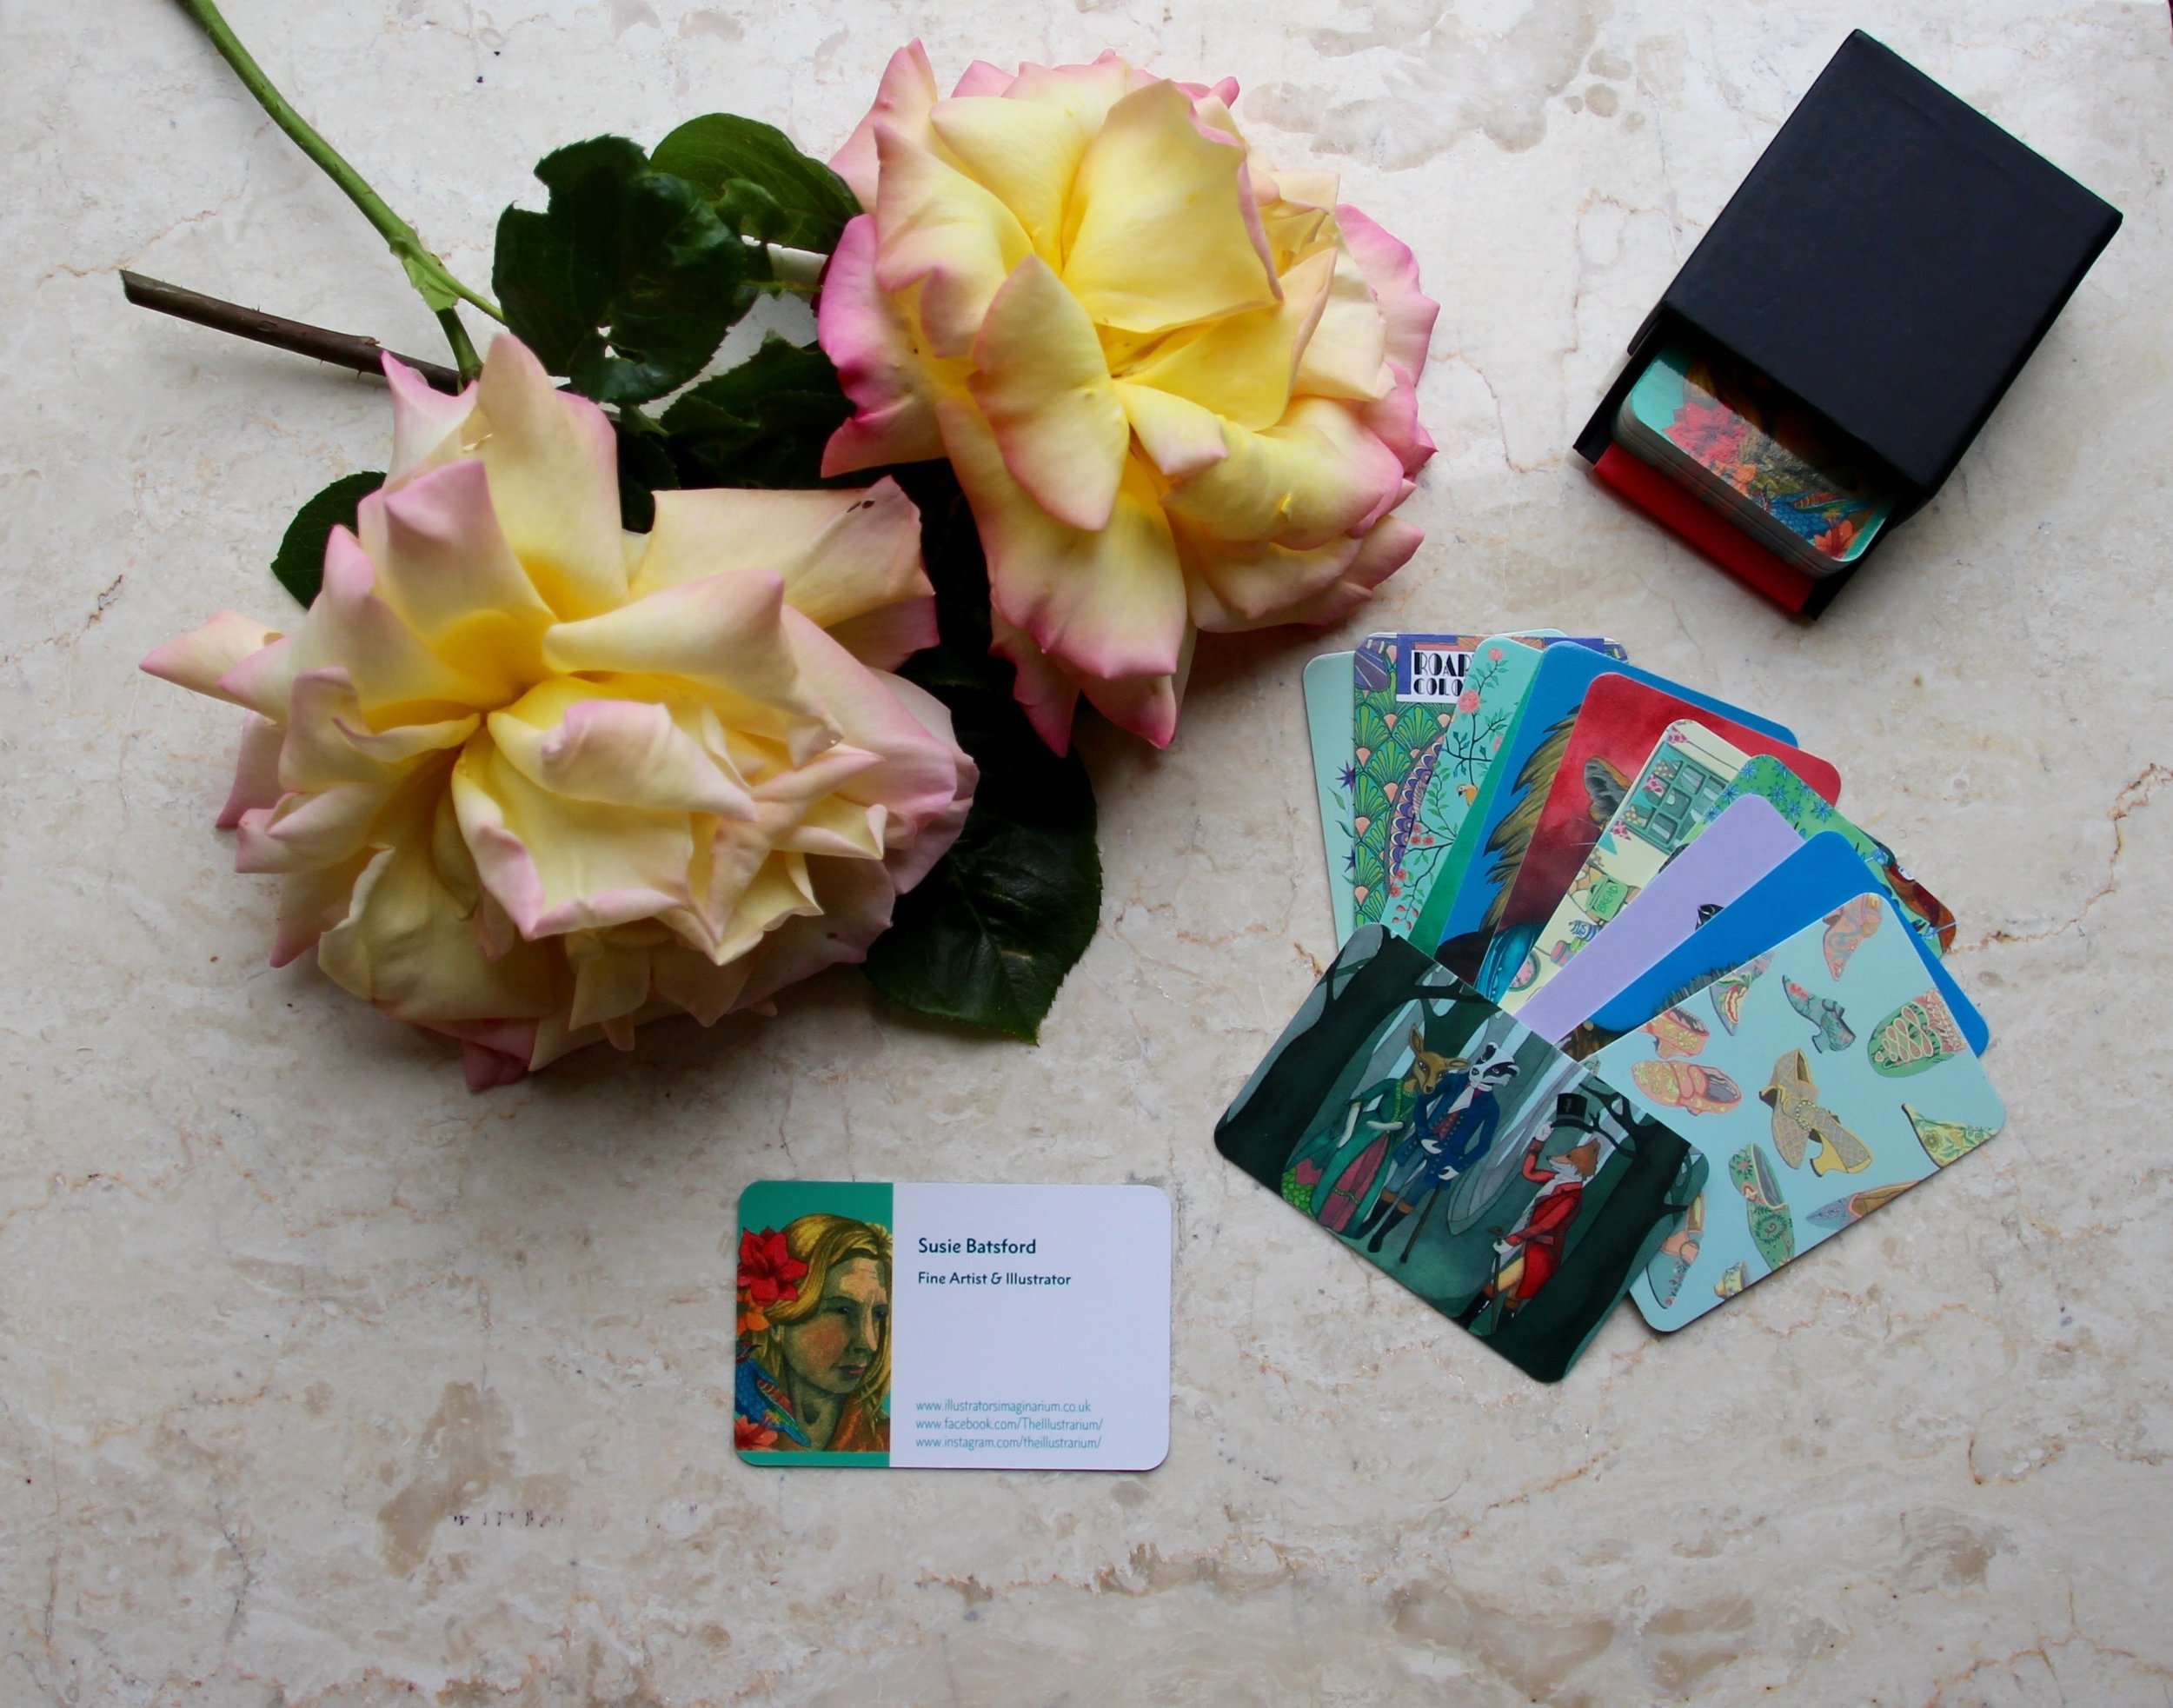 Susie Batsfords Business Cards with Original Art